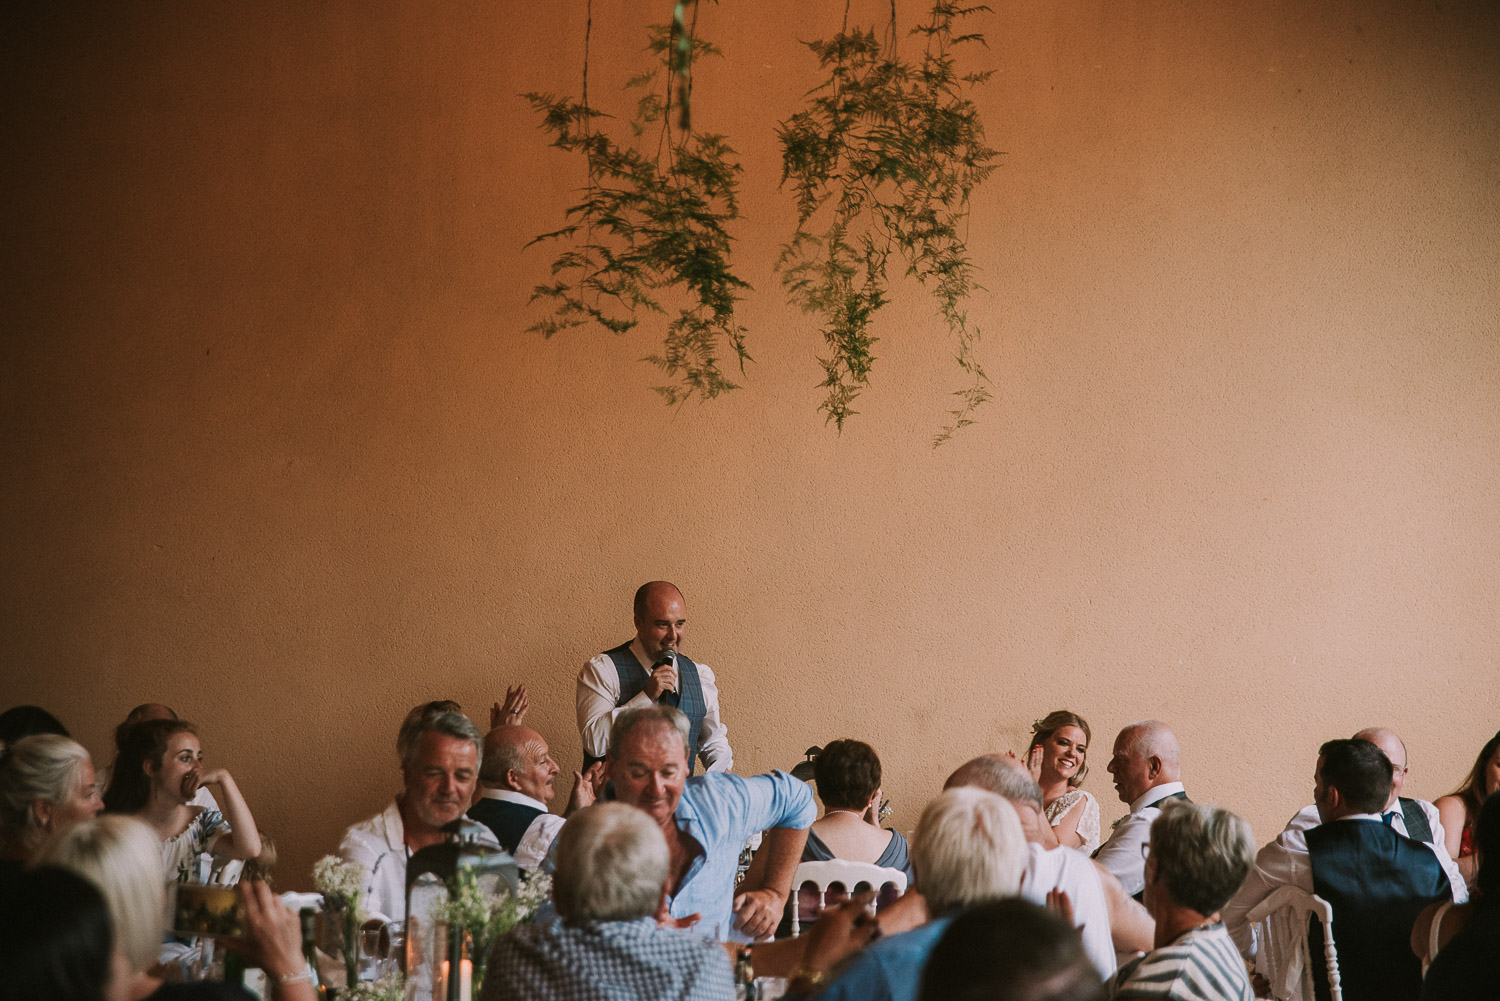 chateau_canet_carcassonne_wedding_katy_webb_photography_france_UK224